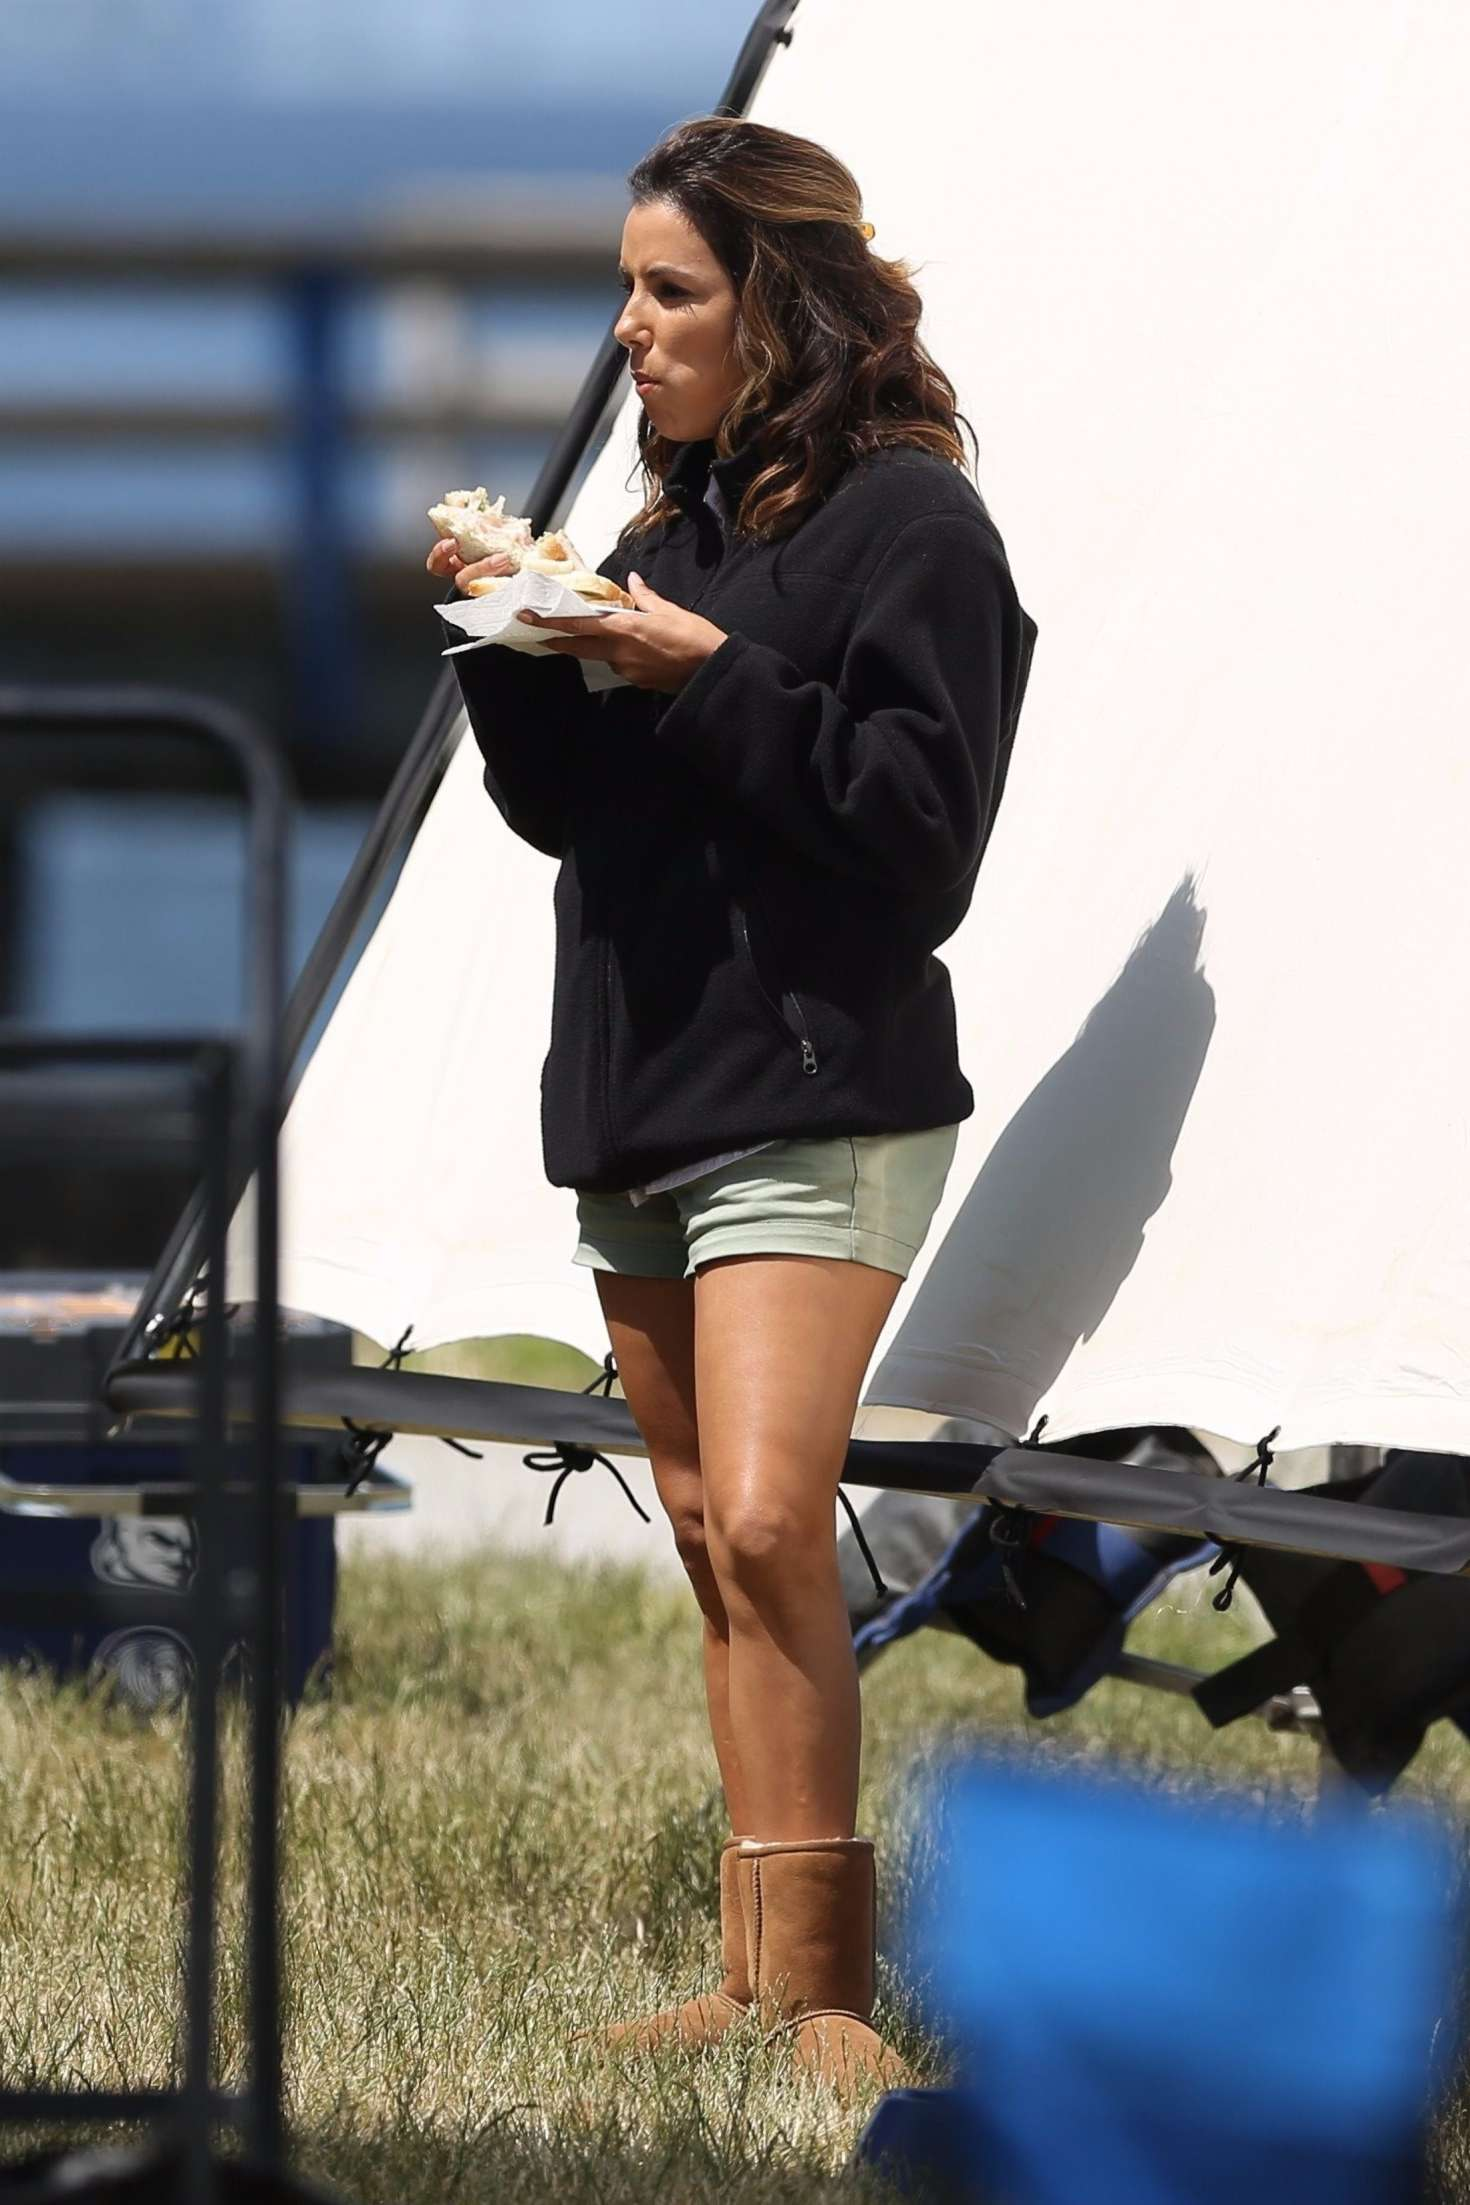 Discussion on this topic: Heidi klum in lingerie, eva-longoria-on-the-set-of-overboard/